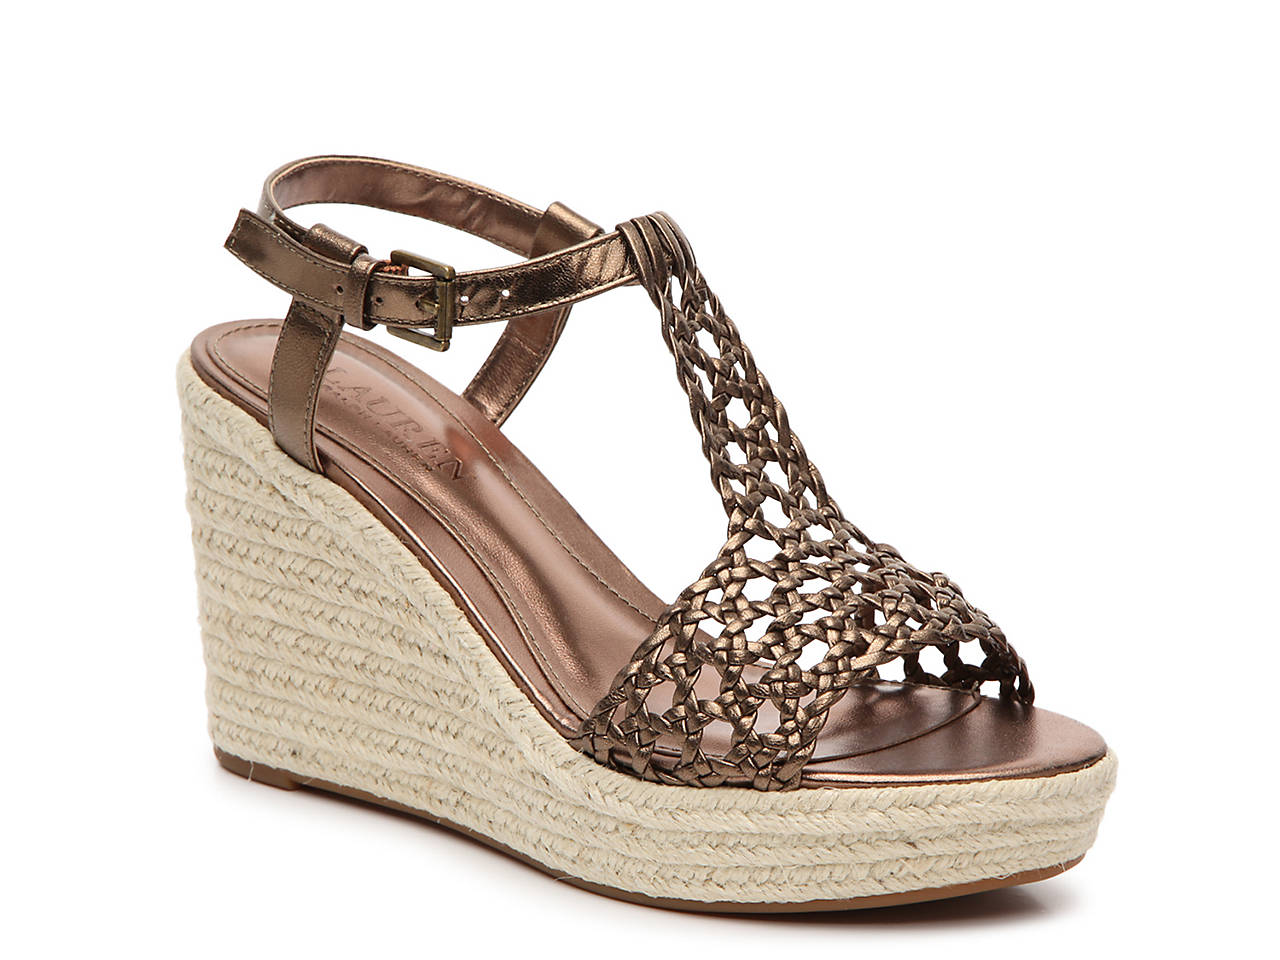 cd1683698 Lauren Ralph Lauren Hailey Wedge Sandal Women's Shoes | DSW